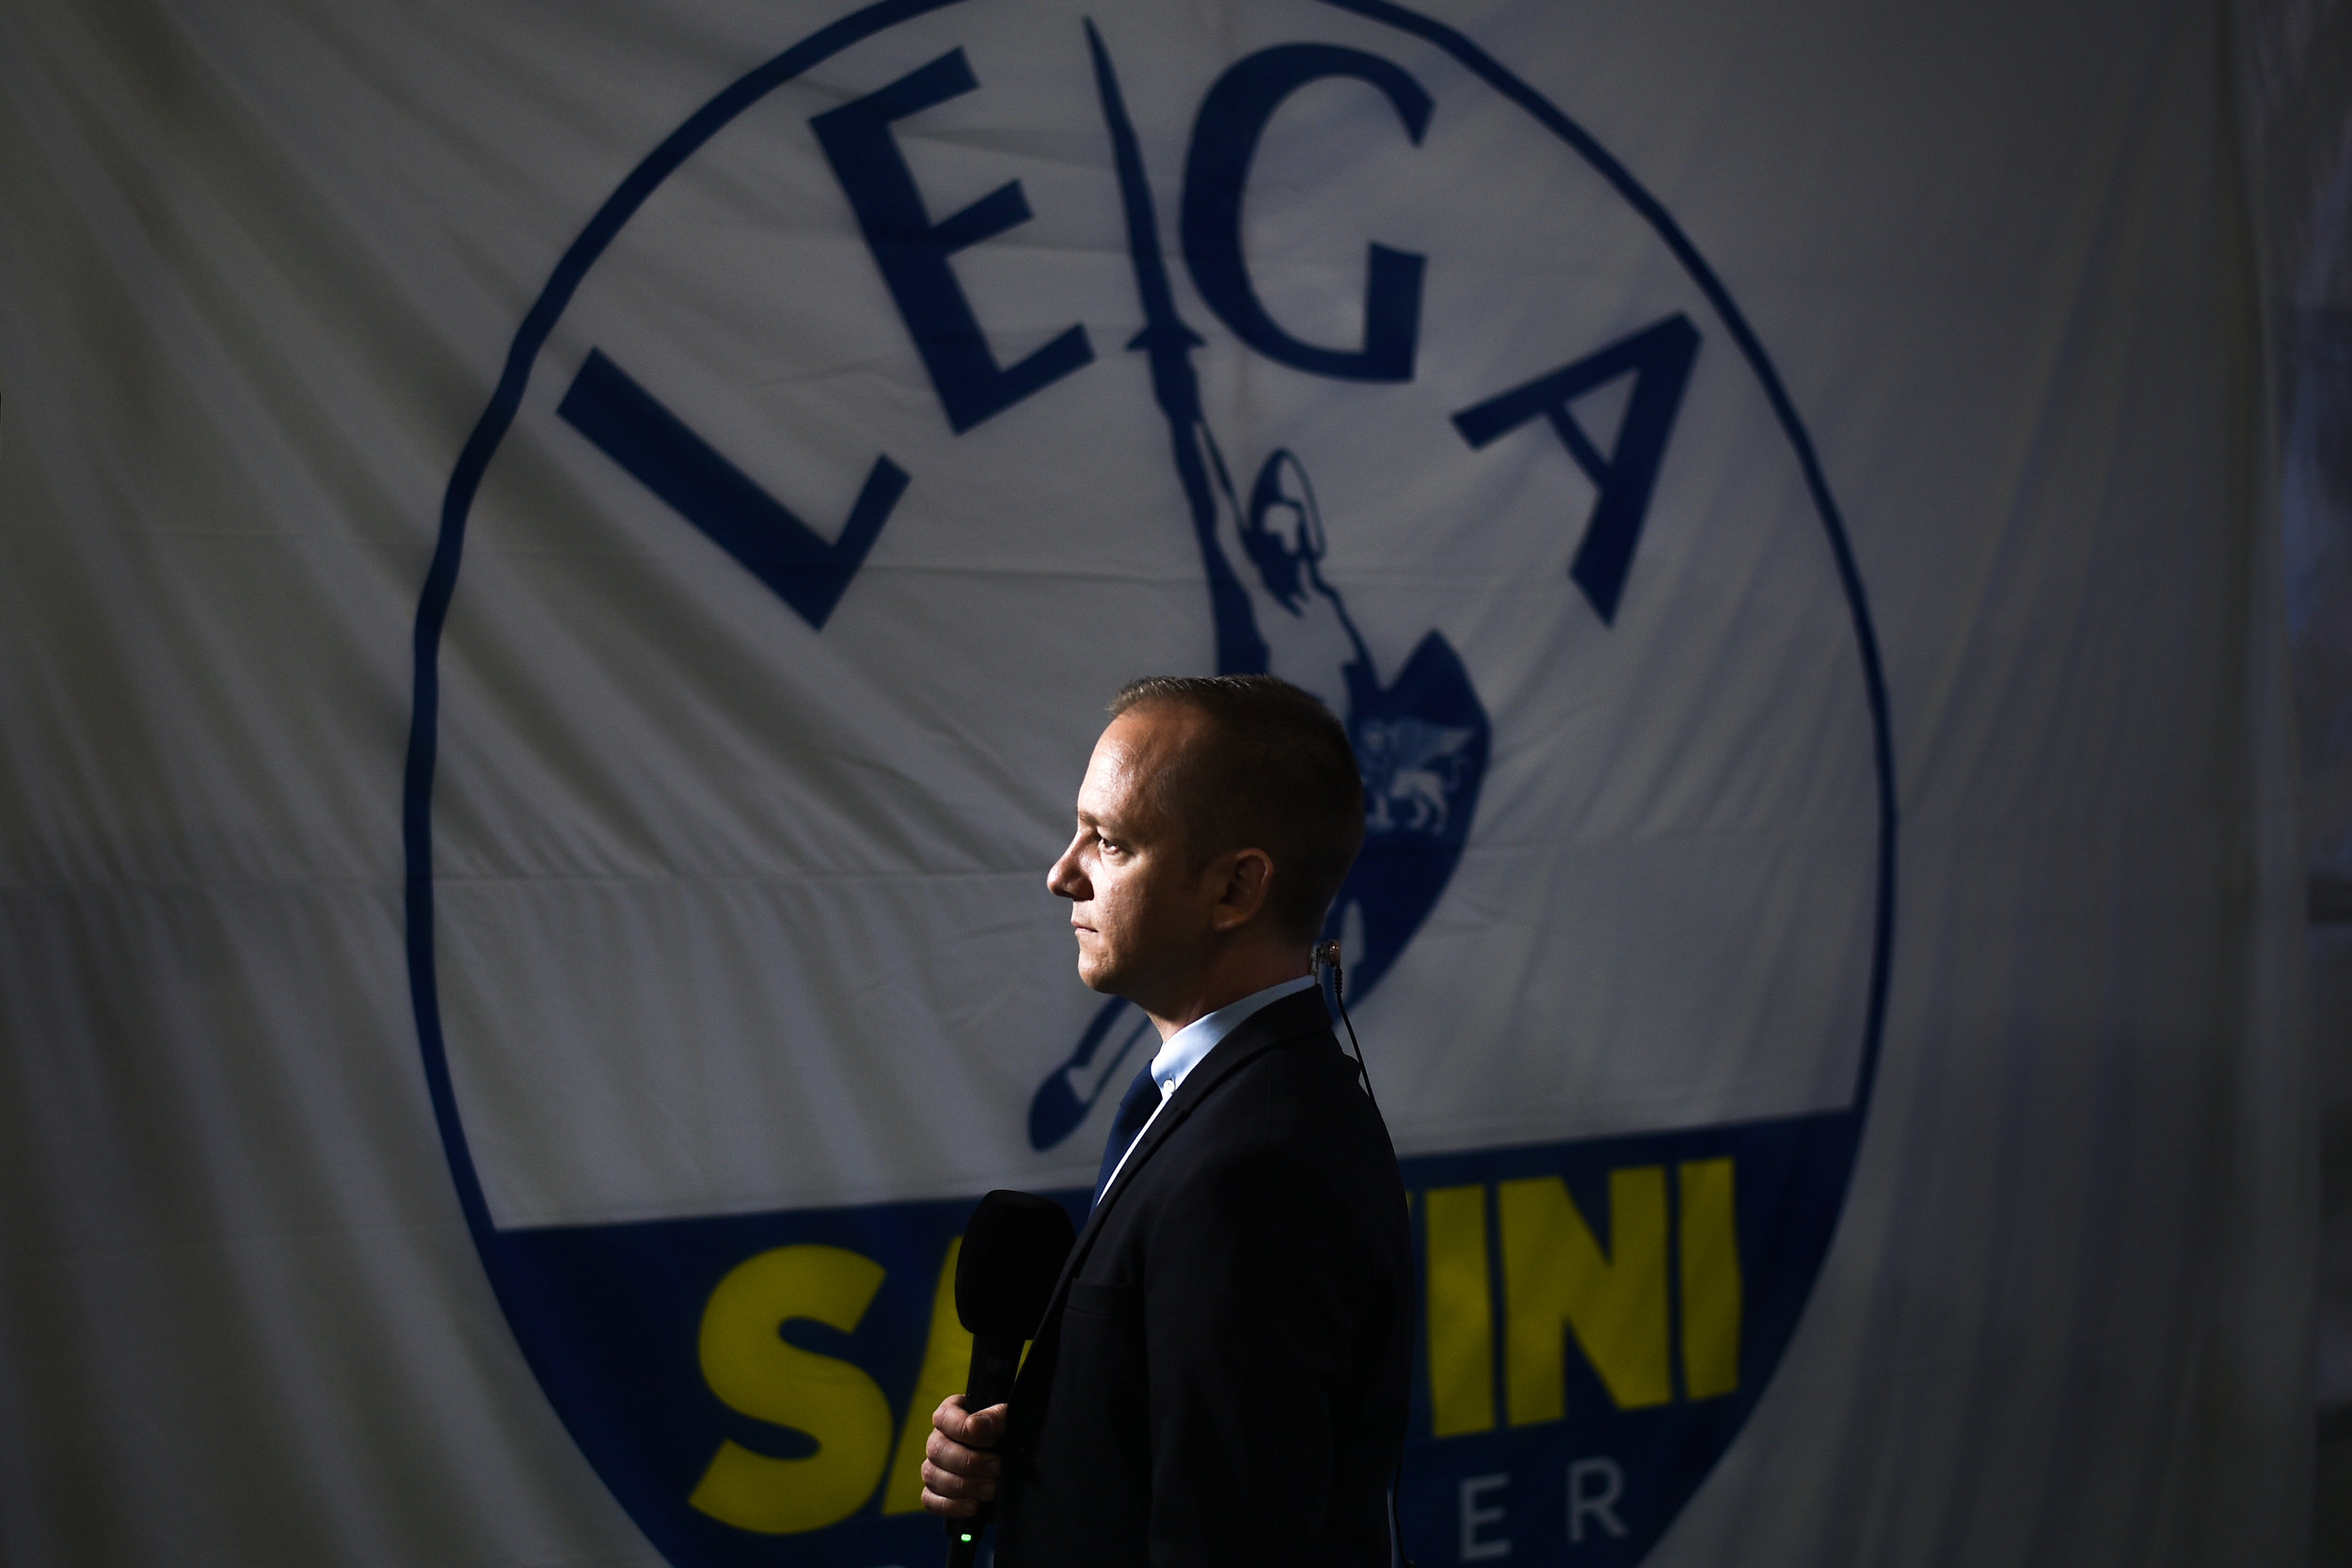 A journalist reports from the League party headquarters after the end of EU election voting, in Milan, Italy, May 26, 2019.